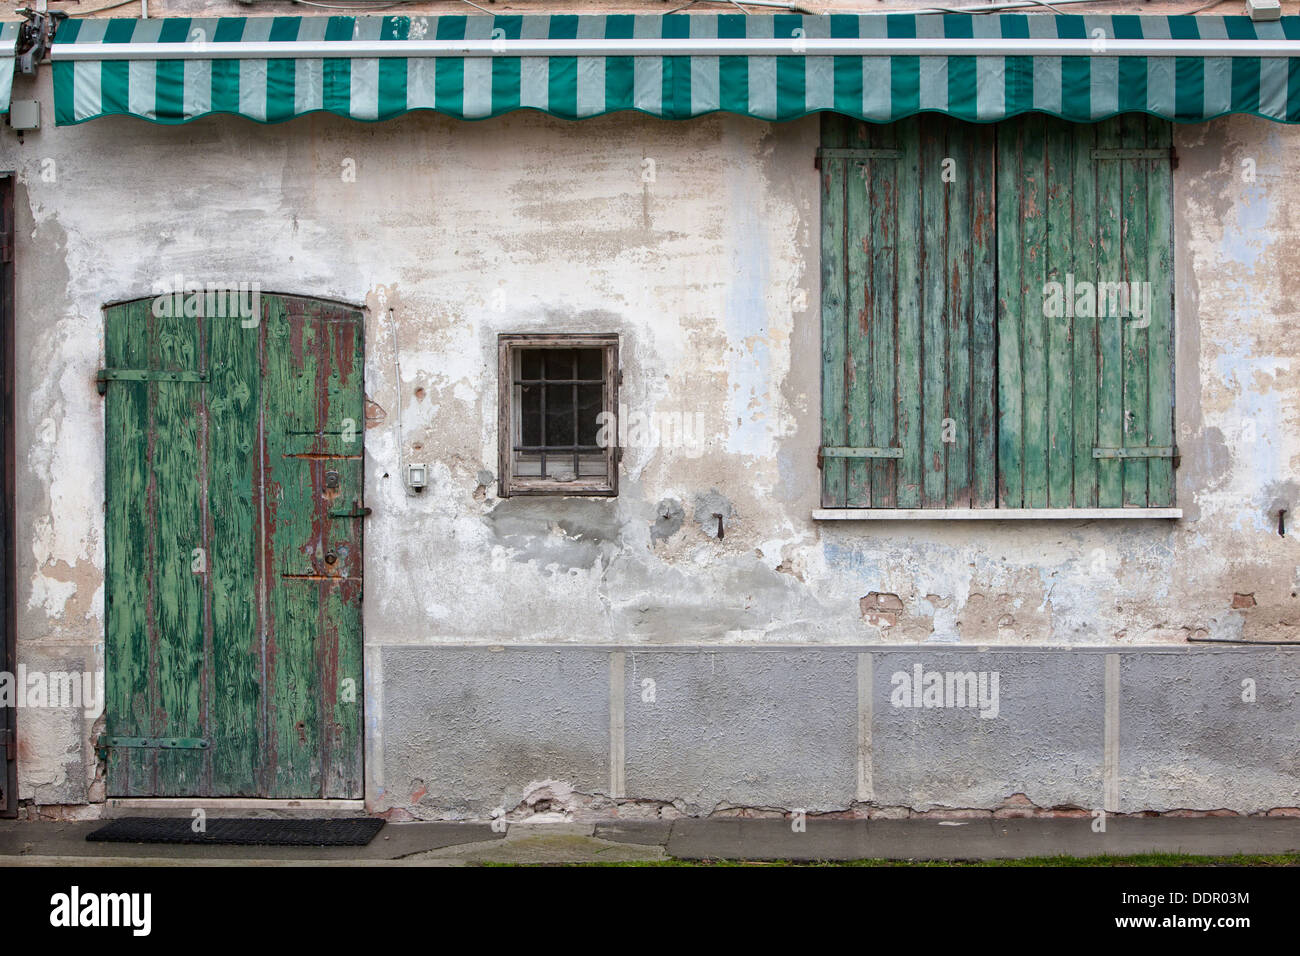 Fabulous Detail of old stucco house with crumbling facade, green wooden  QR53